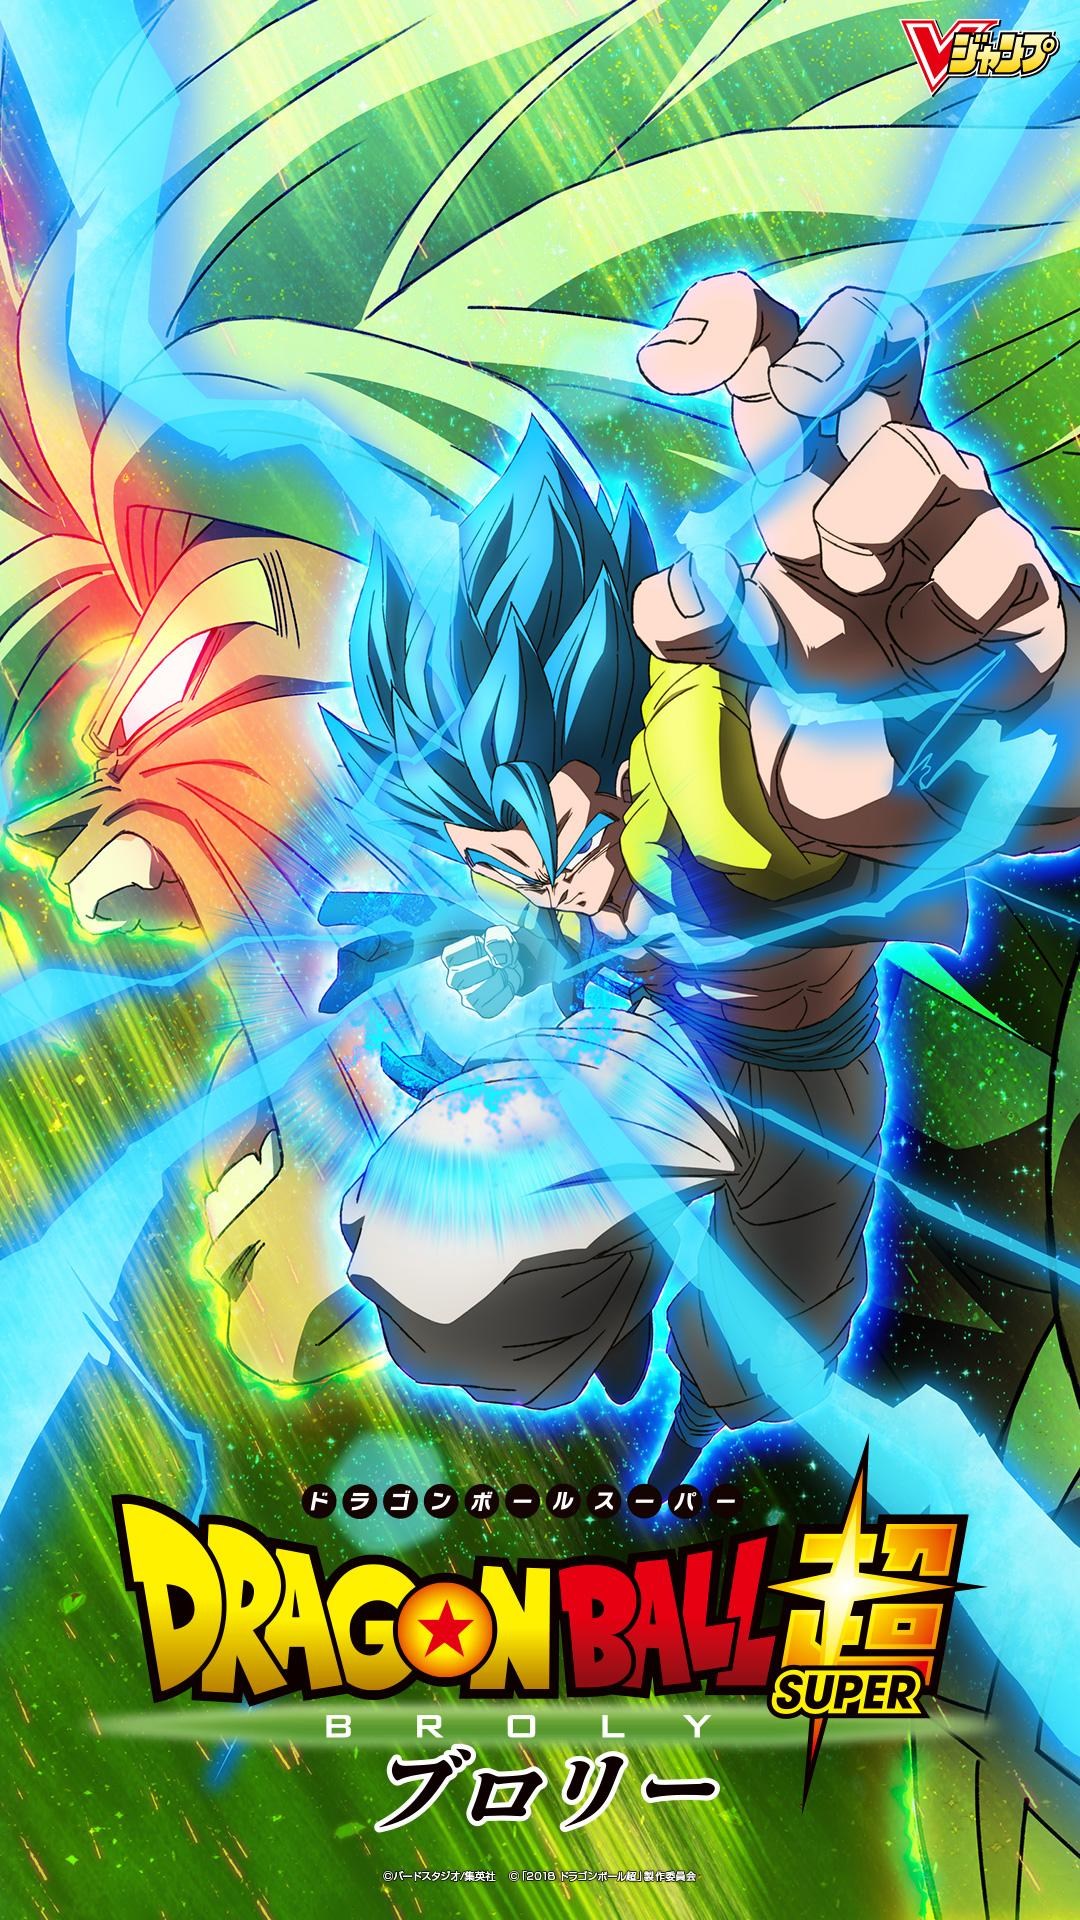 Dragon Ball Super Broly Wallpaper 1920x1080